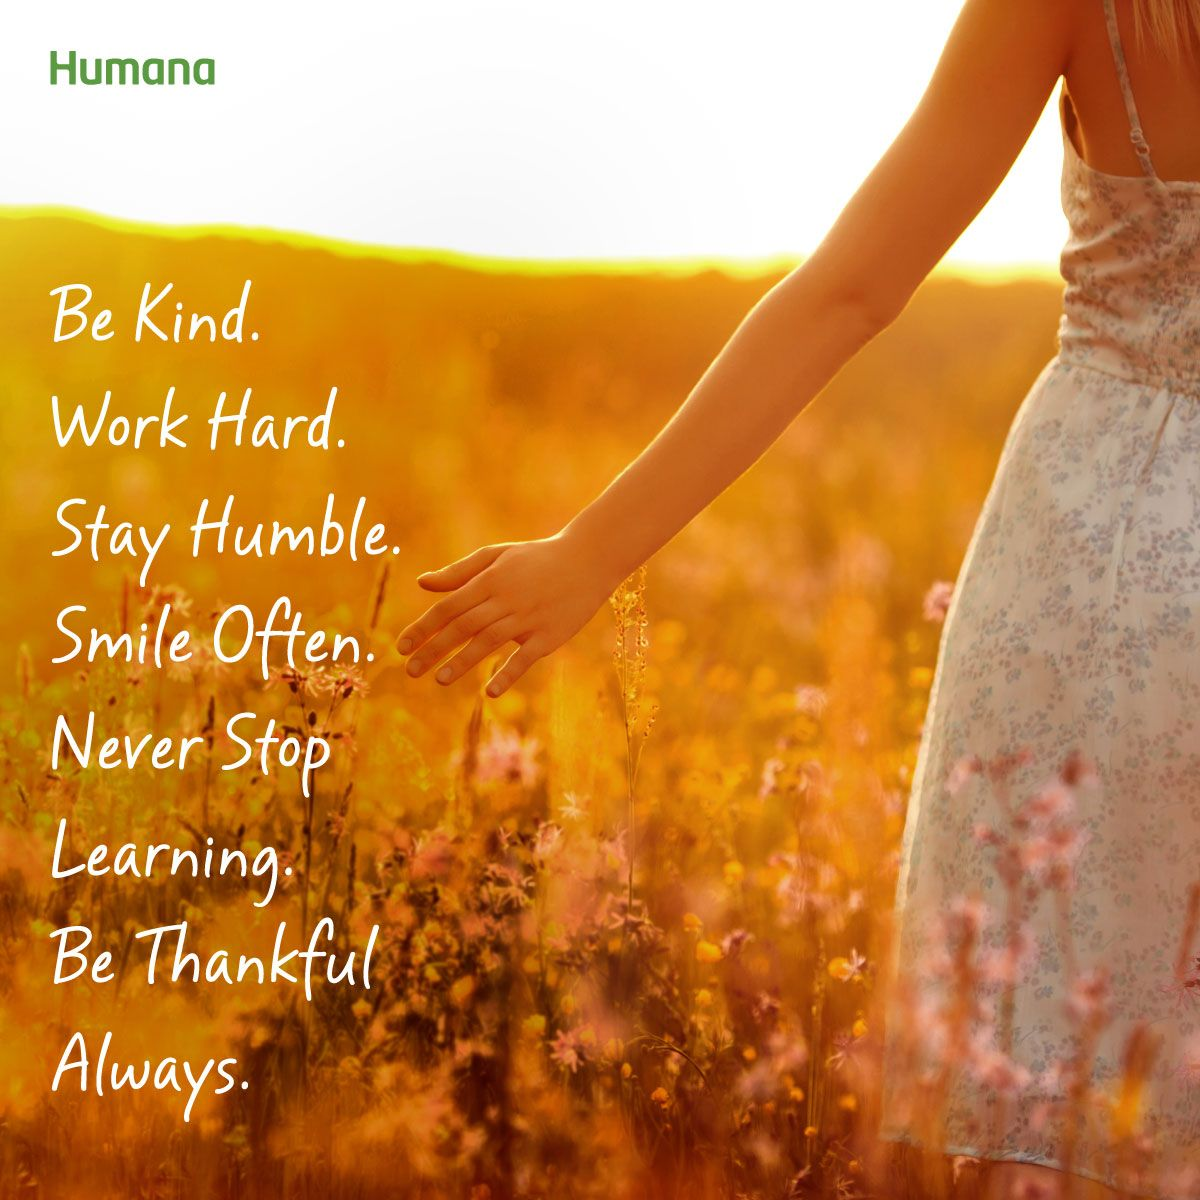 Be kind work hard stay humble smile often never stop